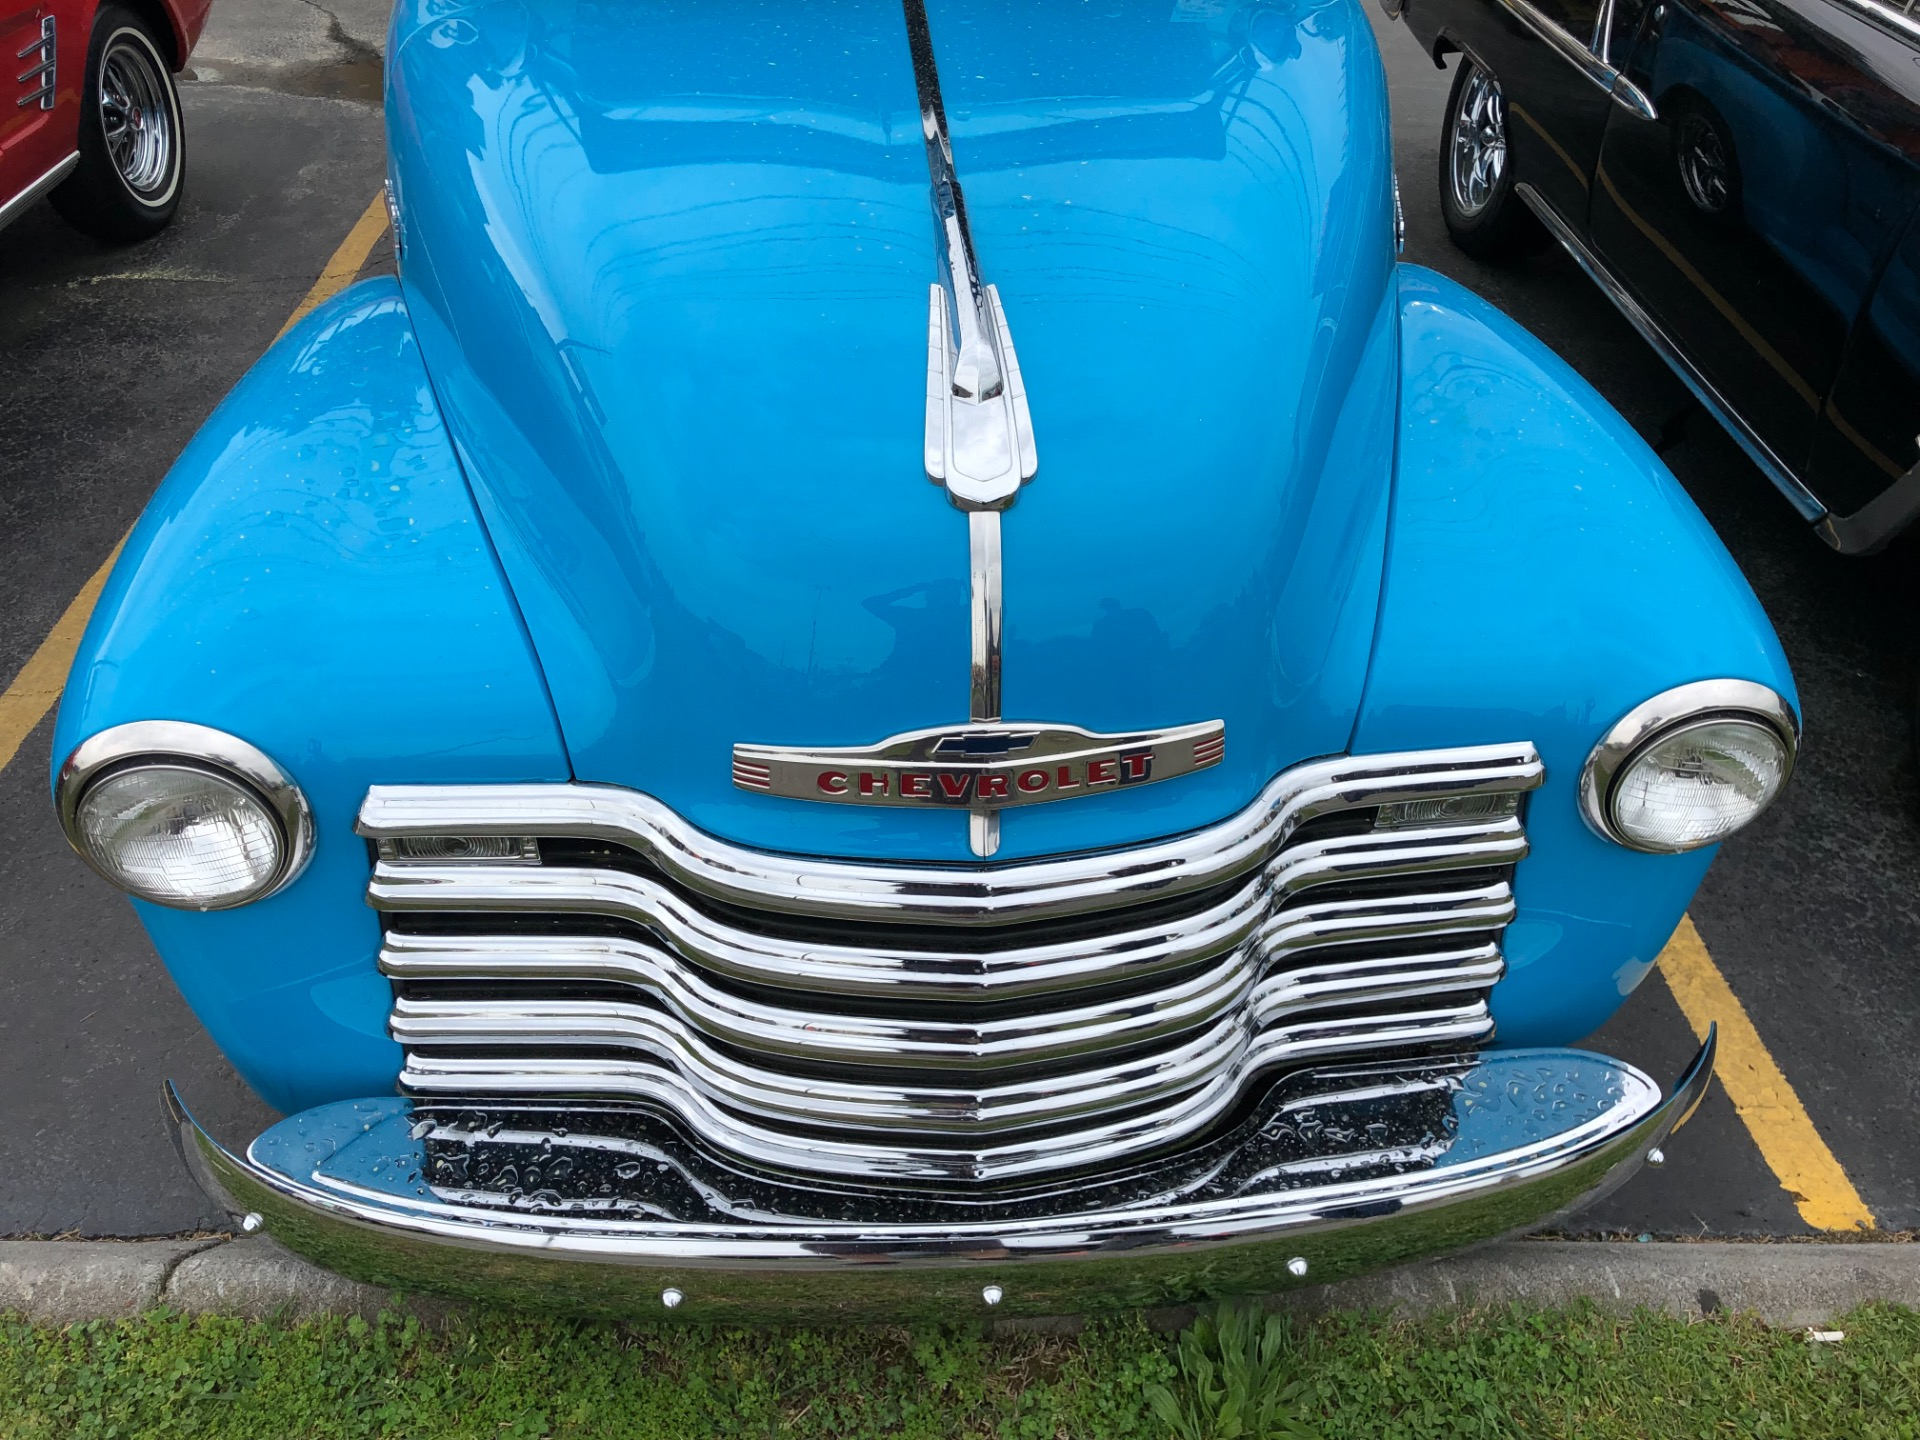 Used 1950 Chevrolet Pickup -BIG BLOCK SOUTHERN POWER-POWER STEERING- | Mundelein, IL